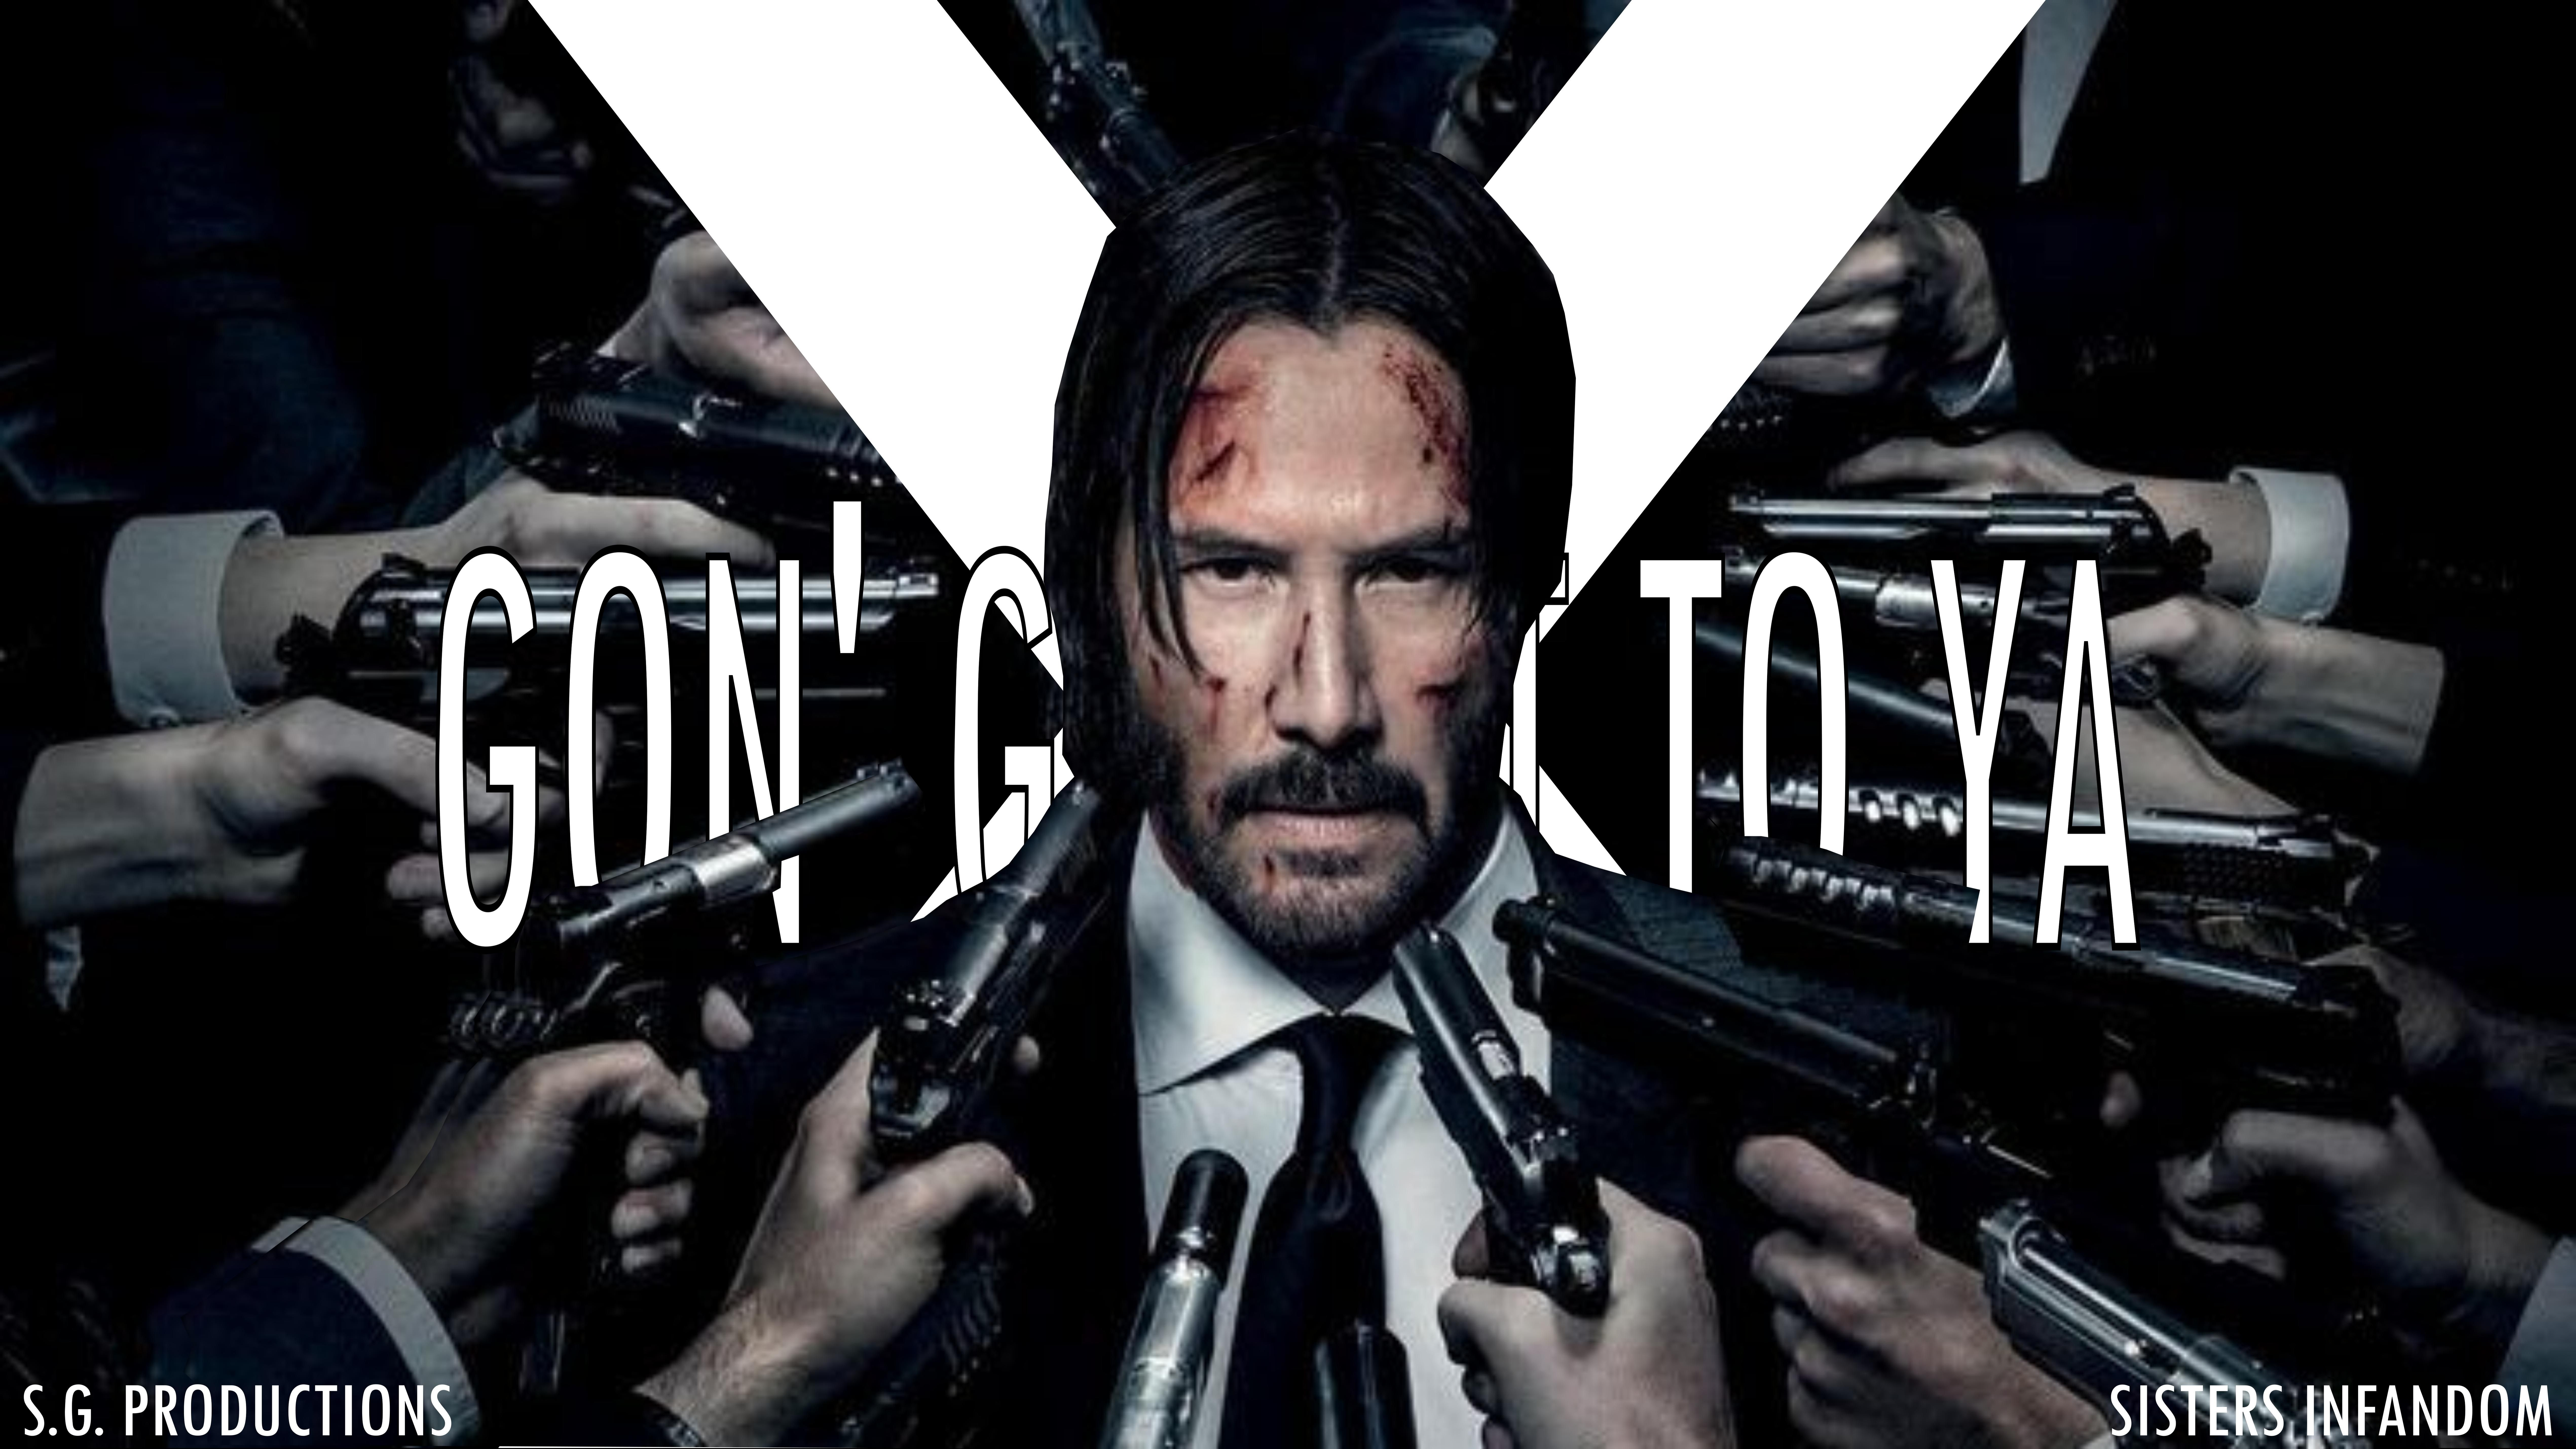 John Wick X Gon Give It To Ya Trailer Remake C W S G Productions Video Tv Shows Tv Series Film